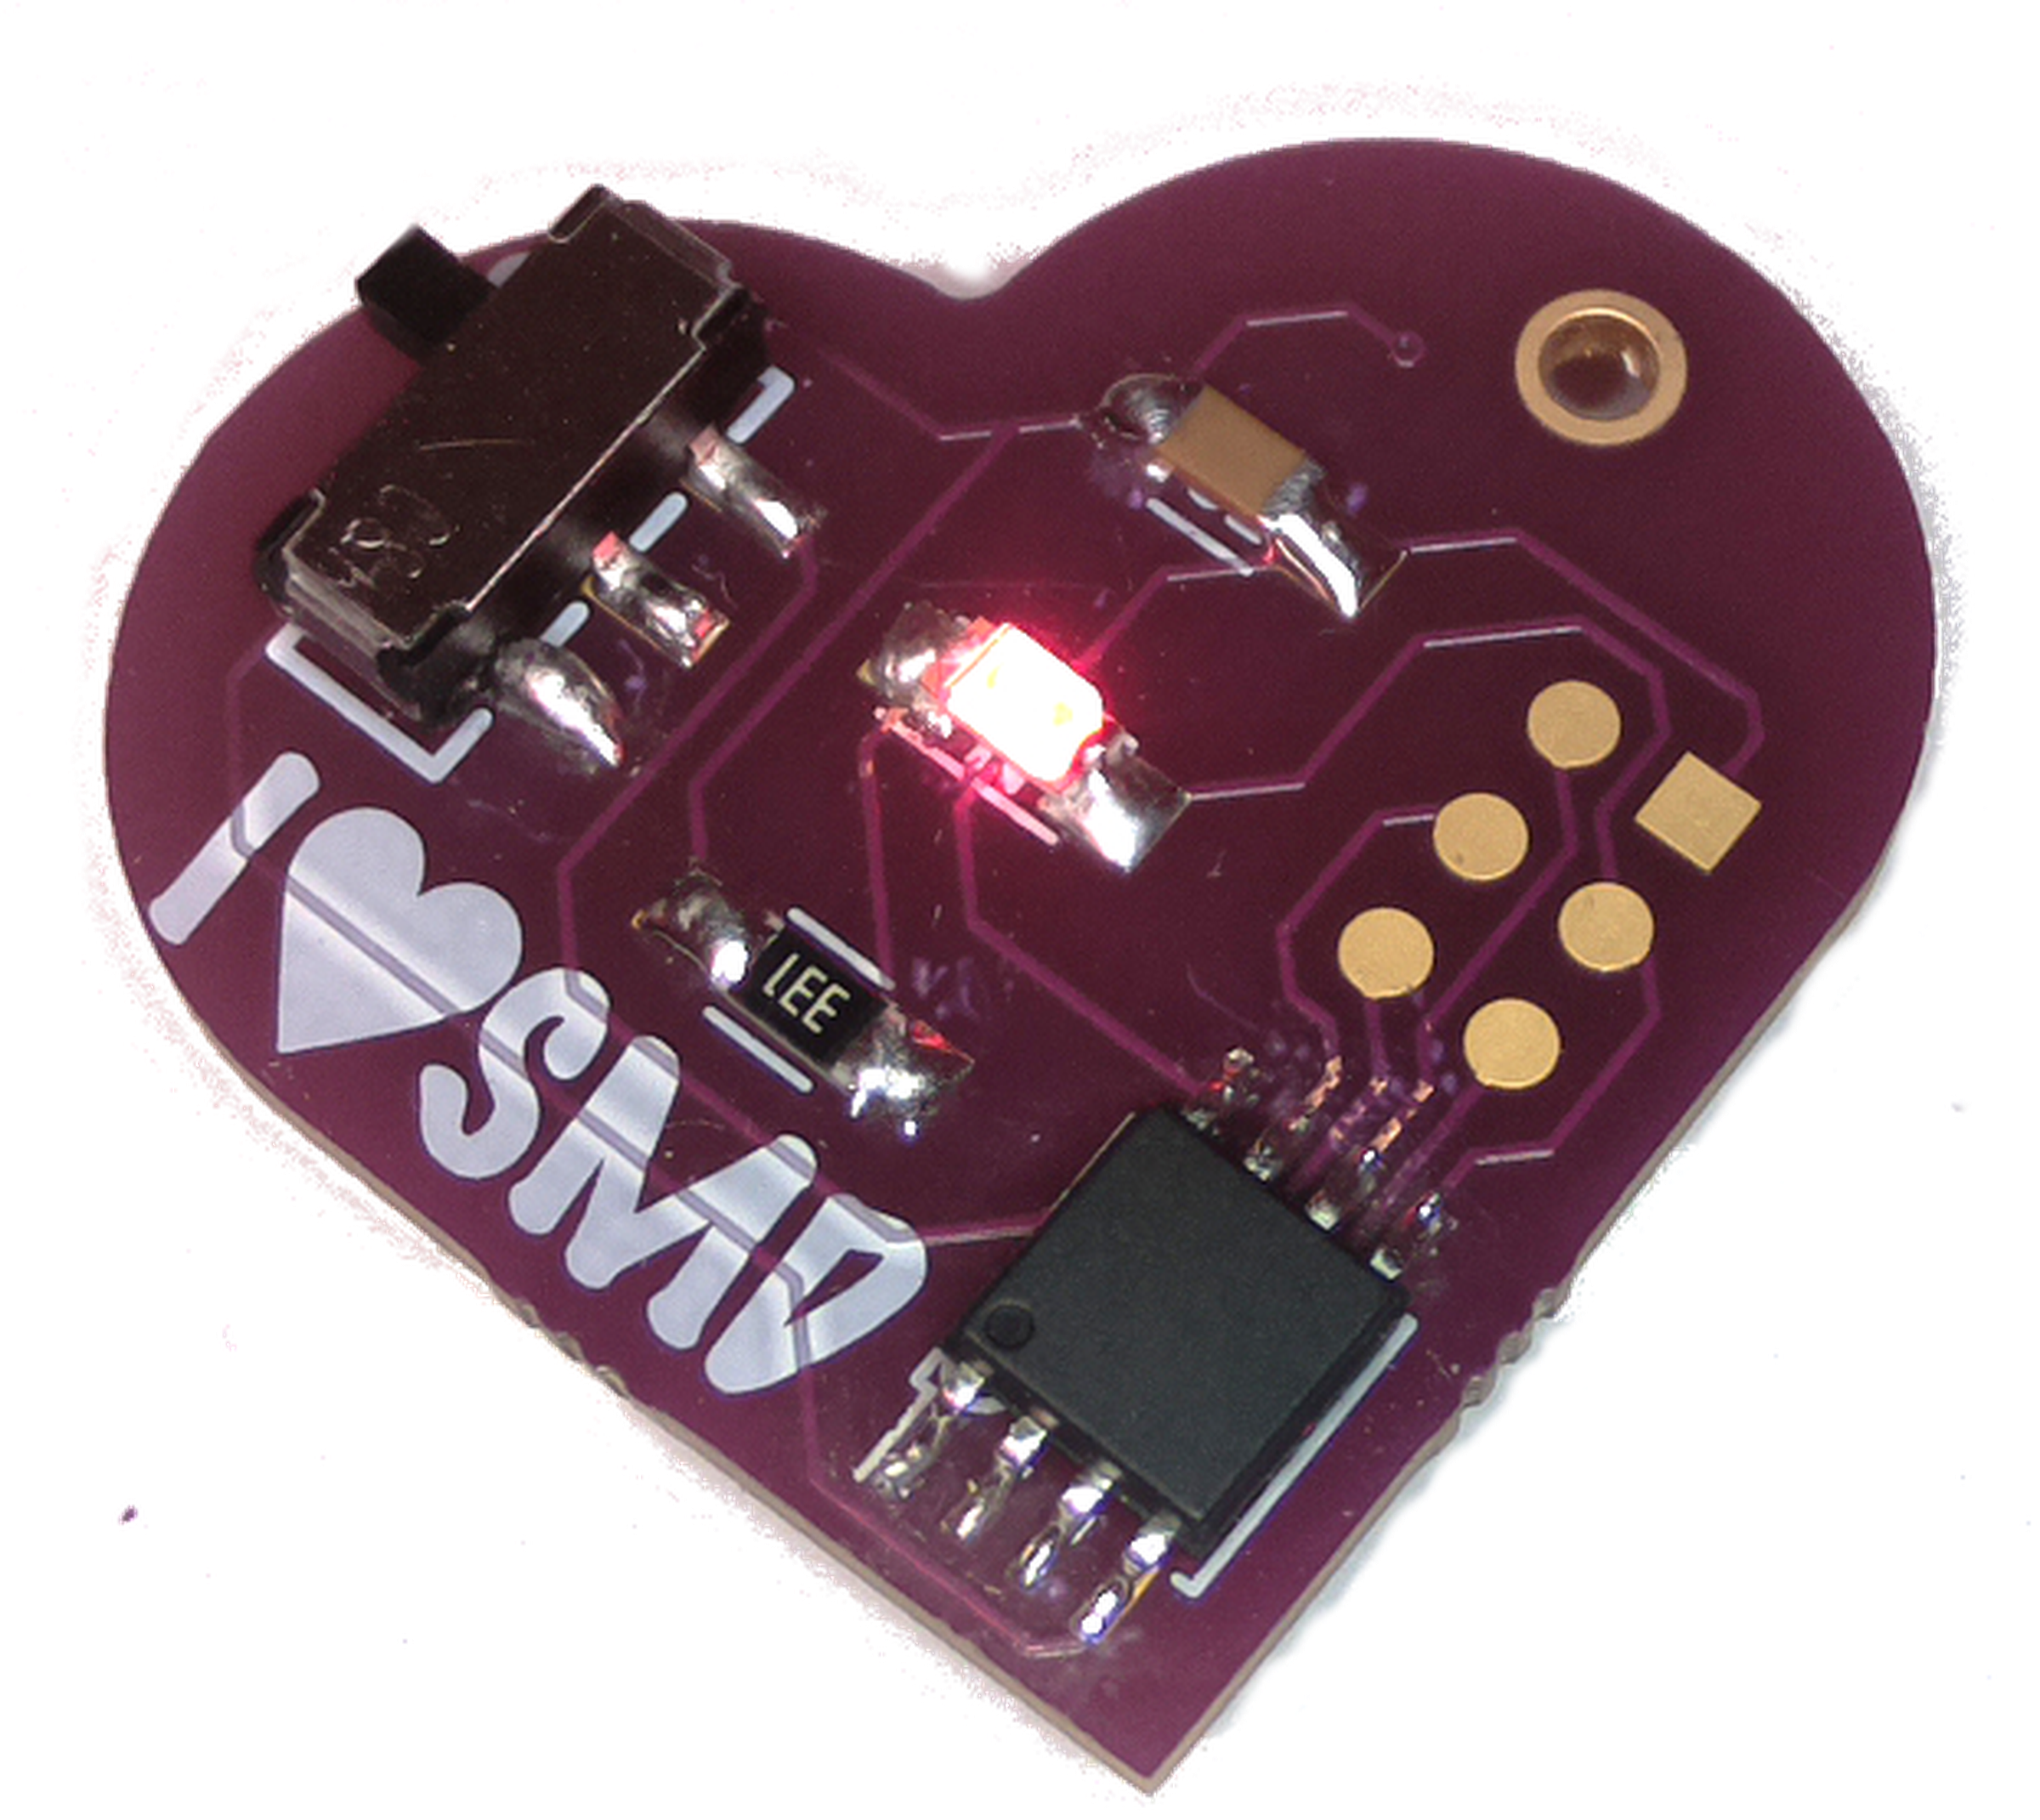 Smd Challenge From Makersbox On Tindie Build A Blinky Smt Kit Wayne And Layne Sale I Can Surface Mount Solder